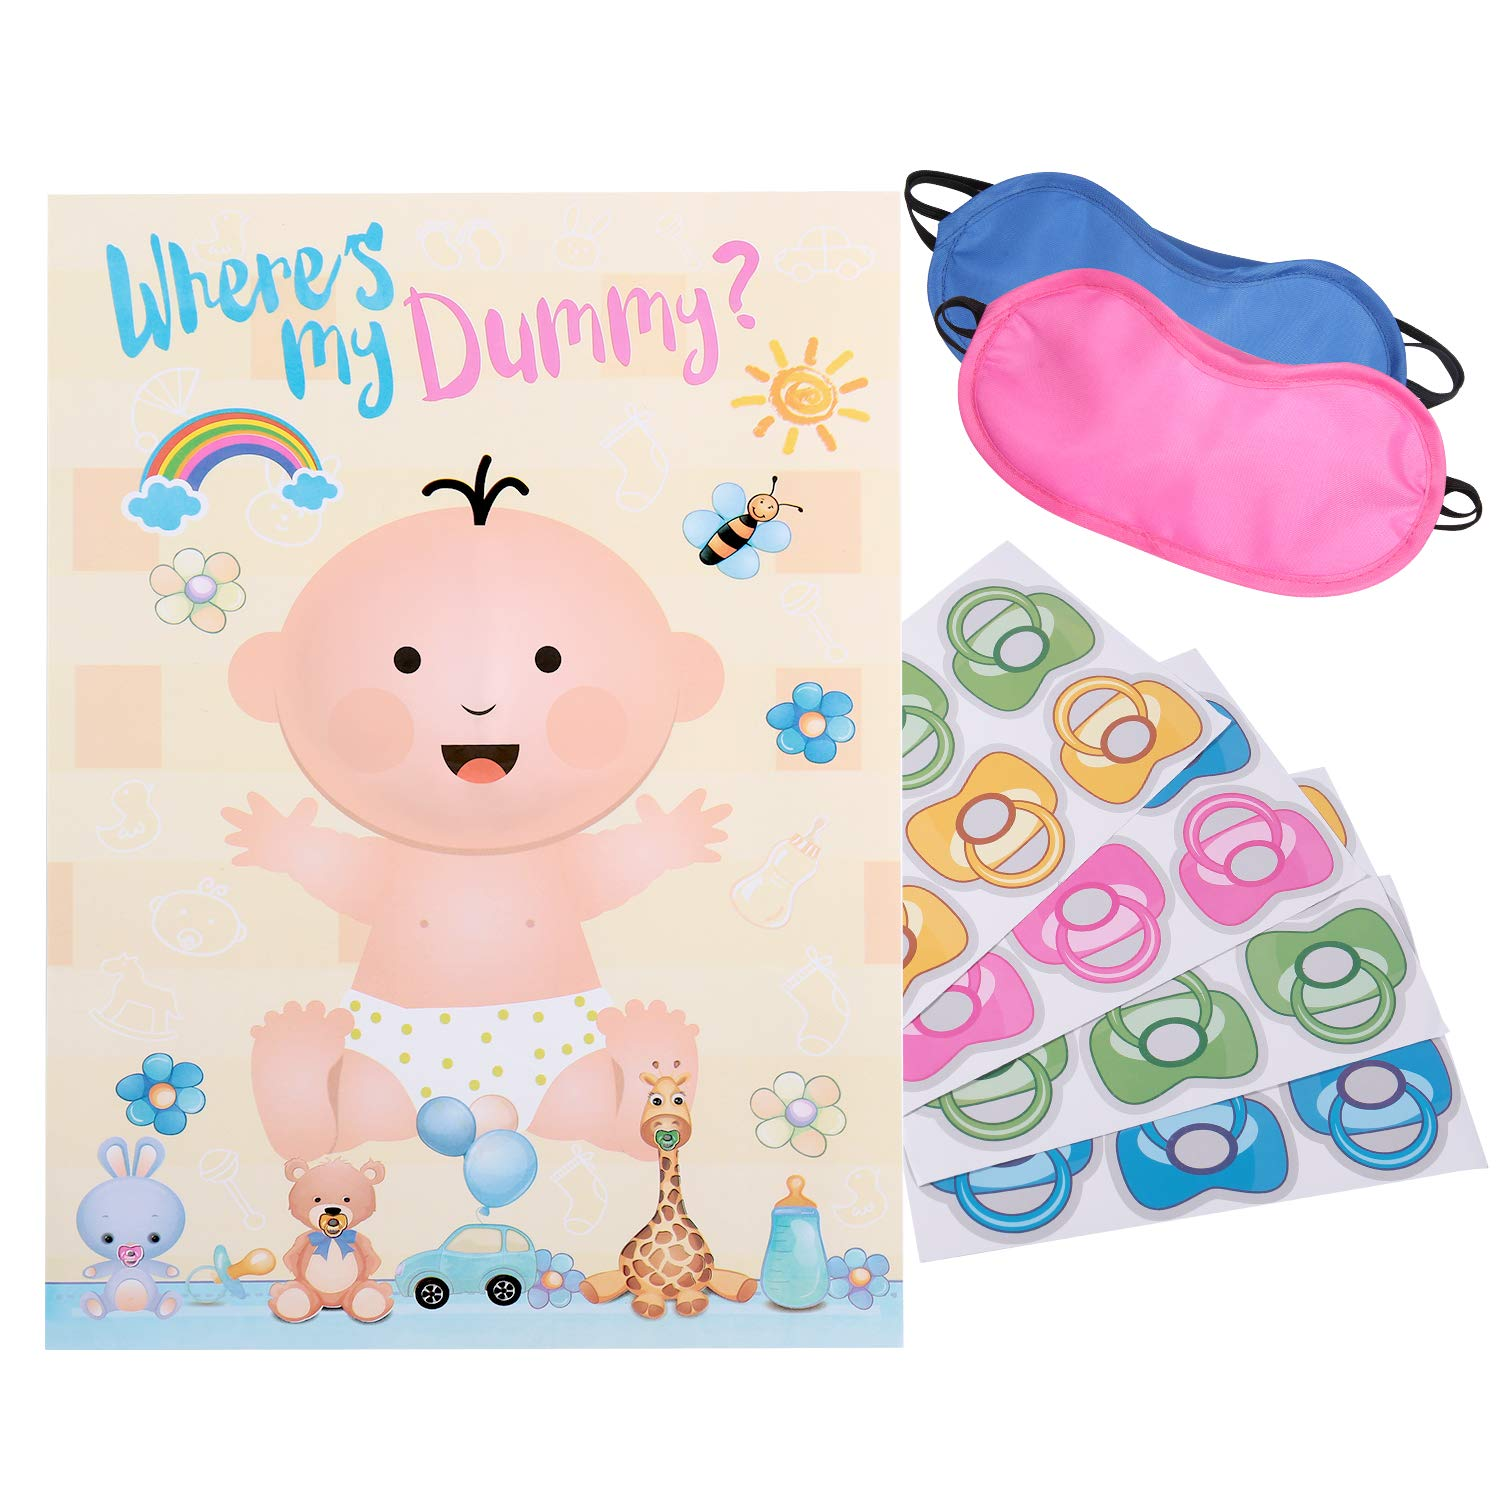 Reusable Baby Shower Games - Pin The Dummy on The Baby Game | 22'' x 34'',  48 Pacifier Stickers | Baby Shower Party Favors for Gender Neutral Boy or